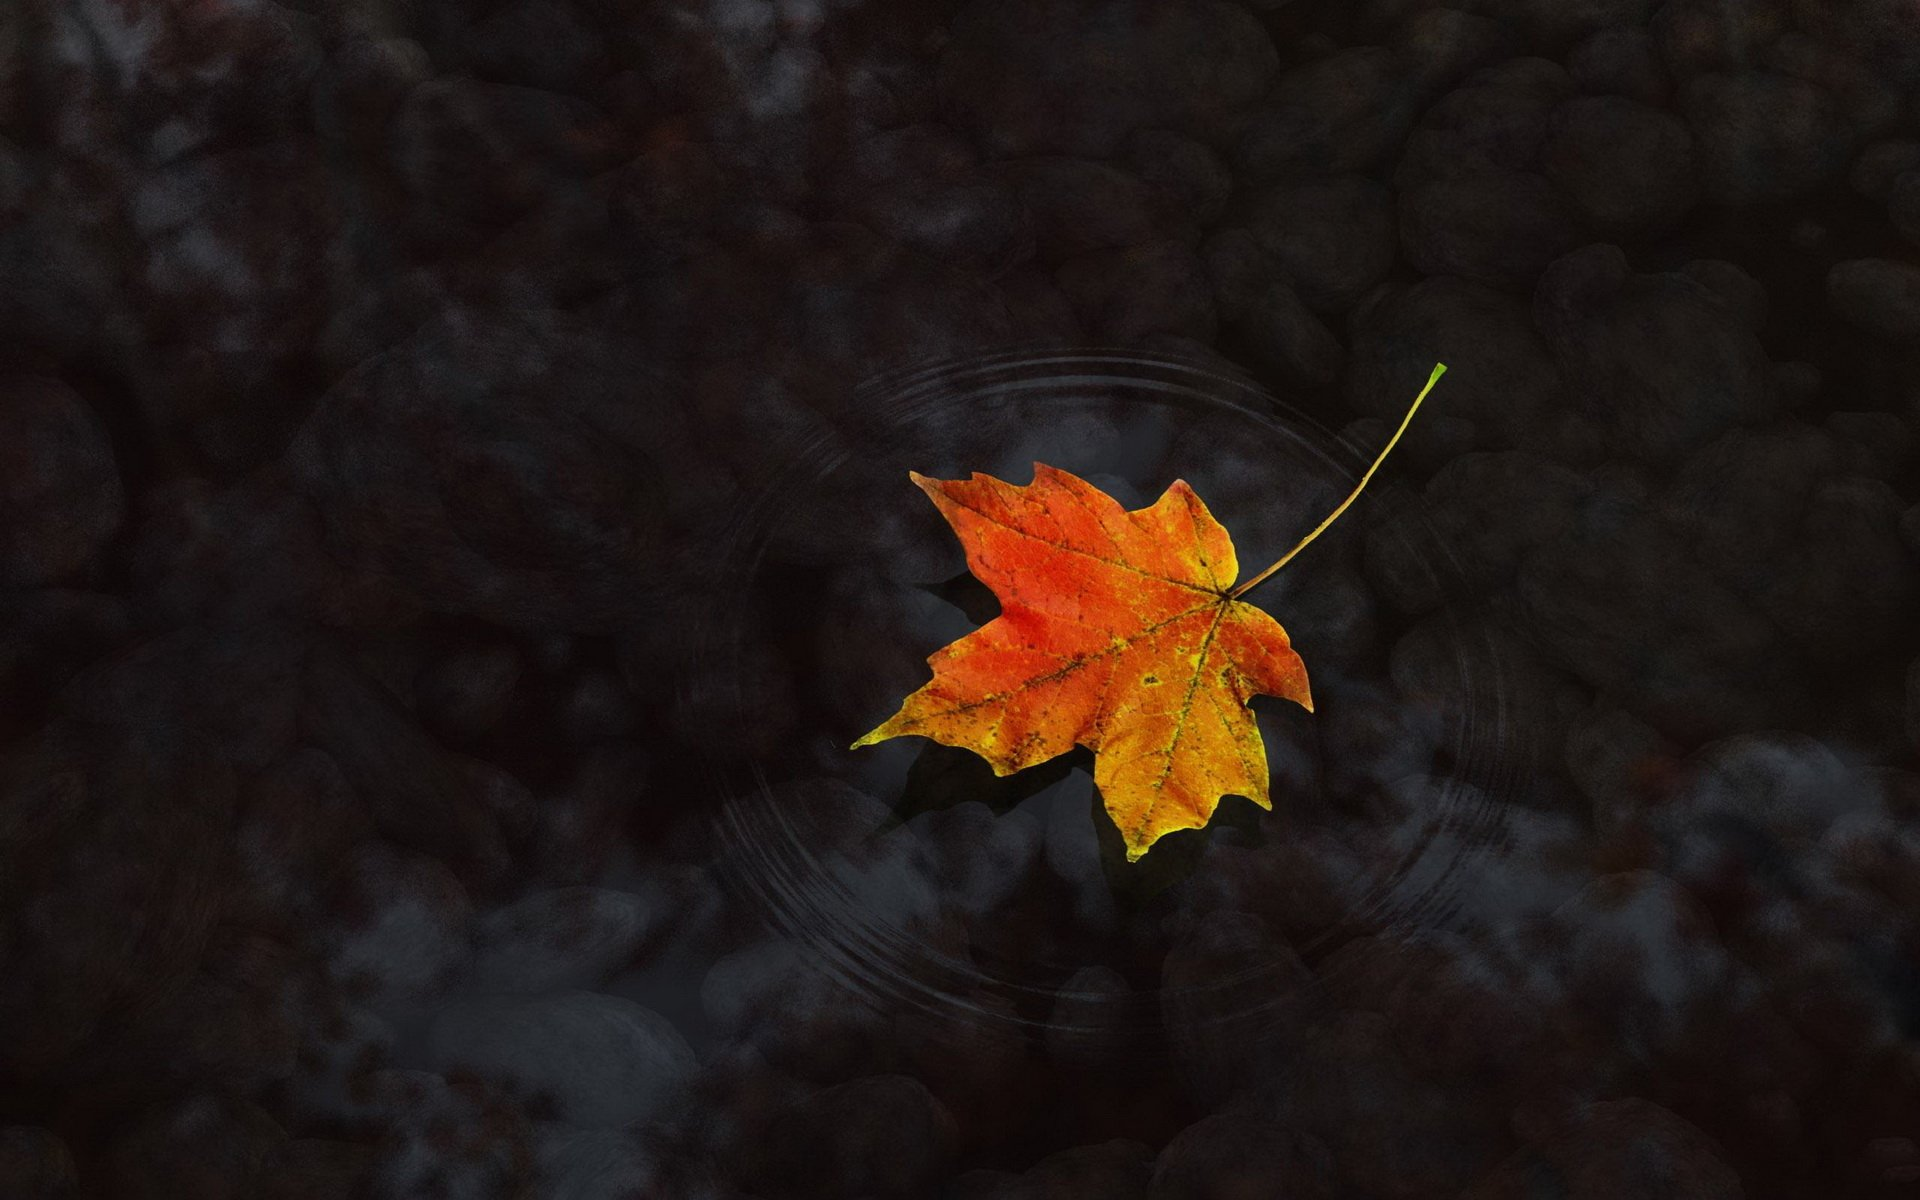 Rustic Fall Desktop Wallpaper Maple Leaf On Water Full Hd Wallpaper And Background Image